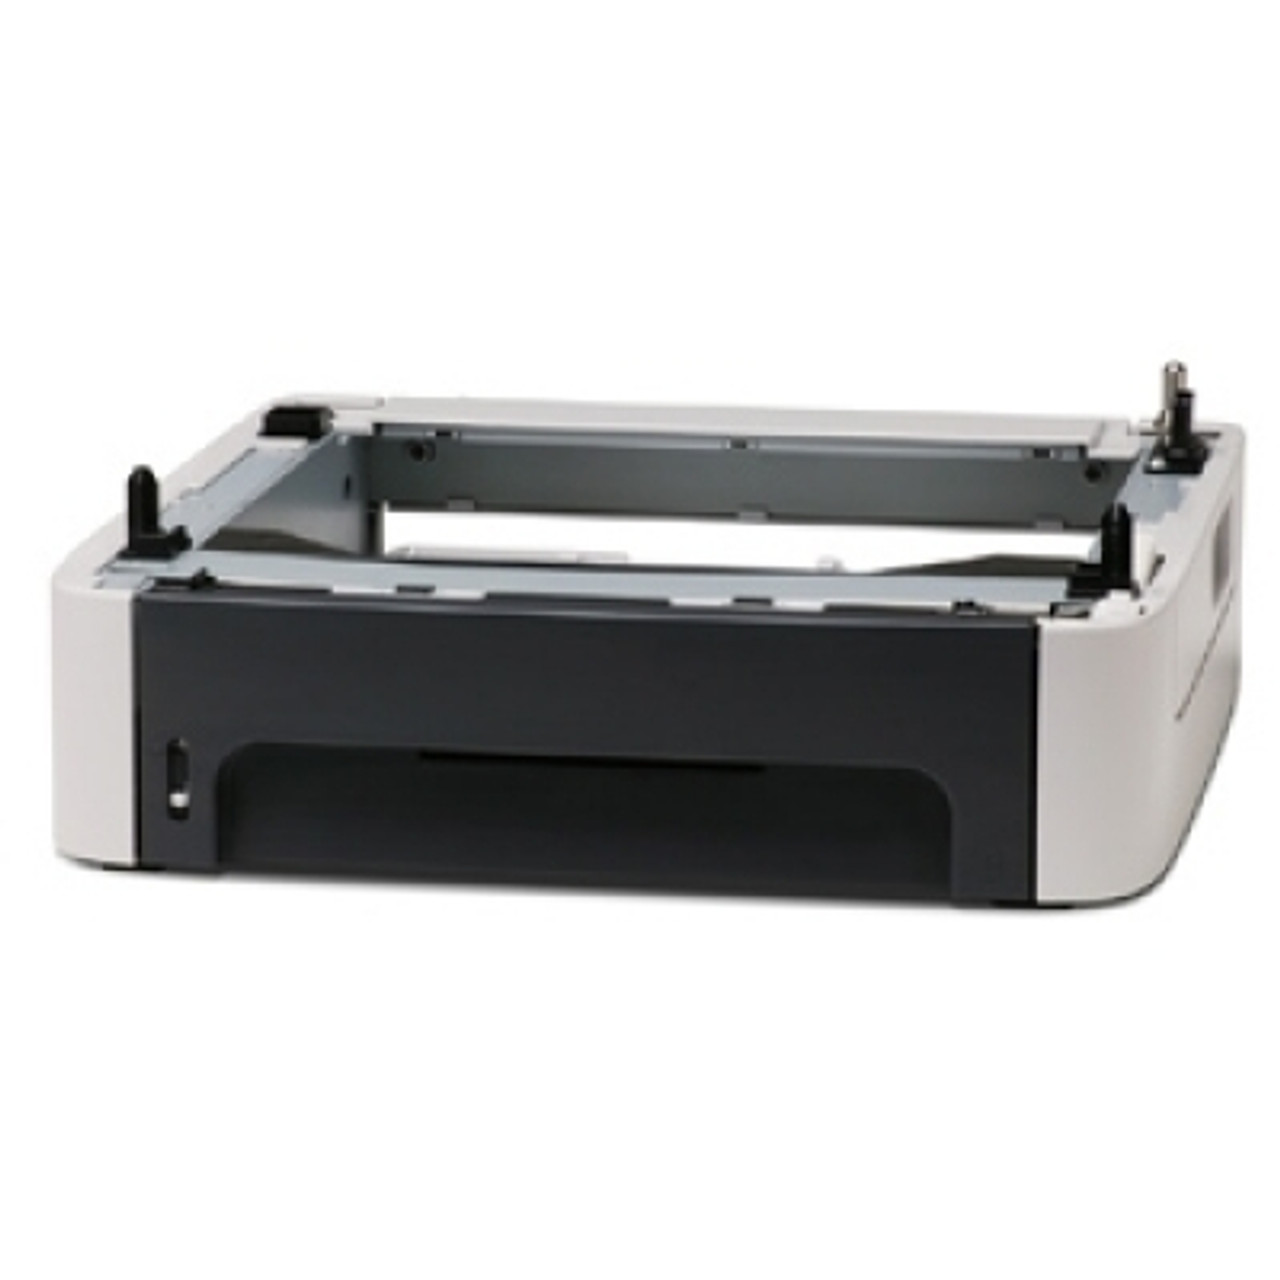 250 Sheet Optional Paper Tray HP LaserJet 1320 P2015